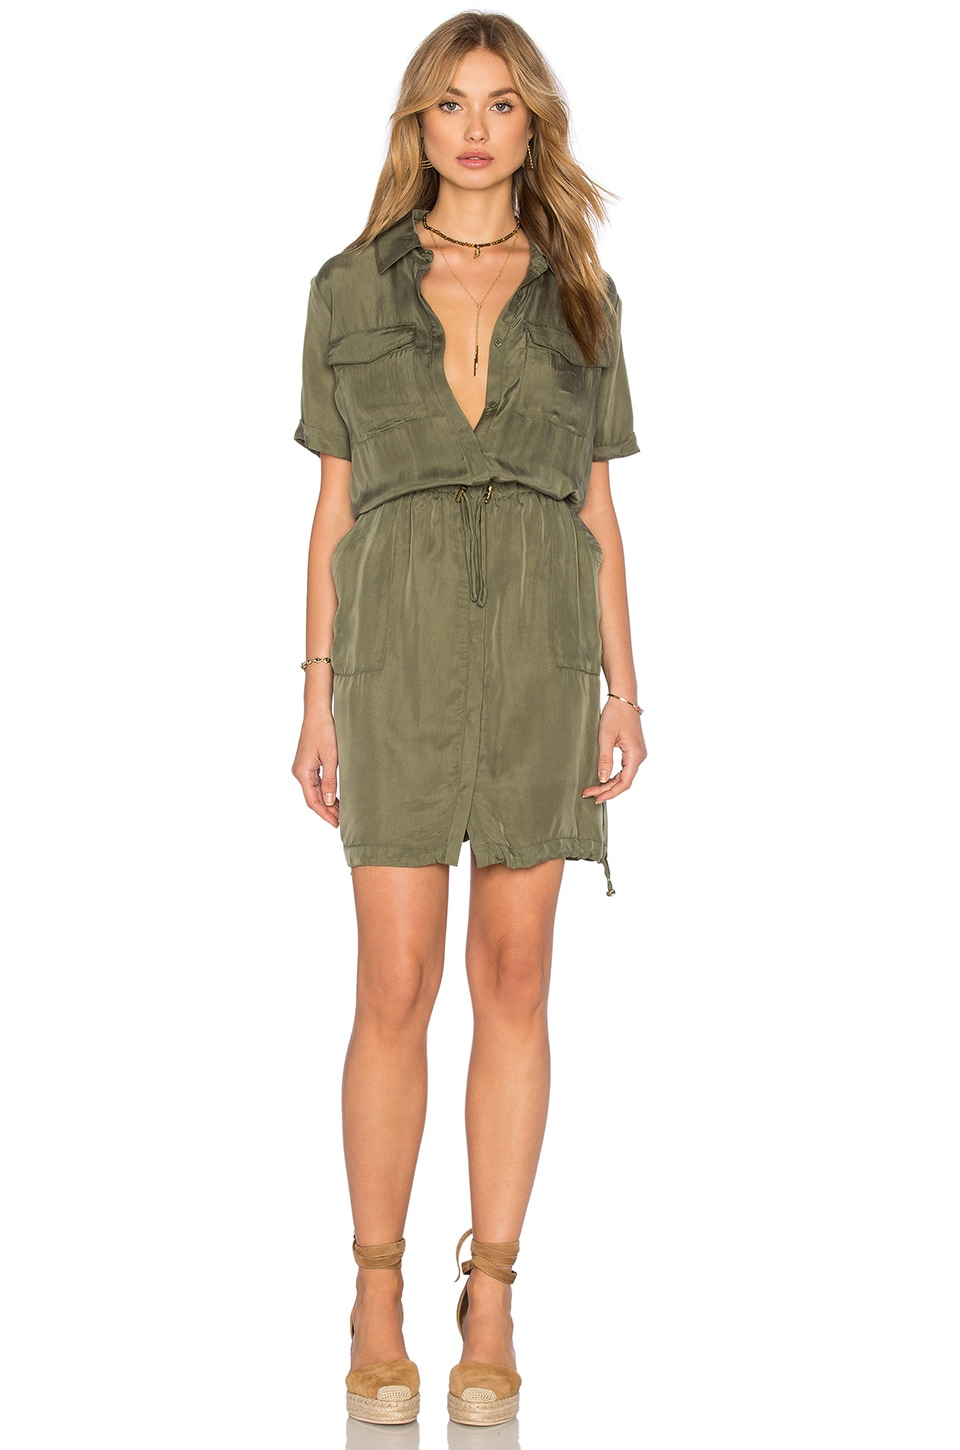 Bailey 44 Lebombo Dress in Olive